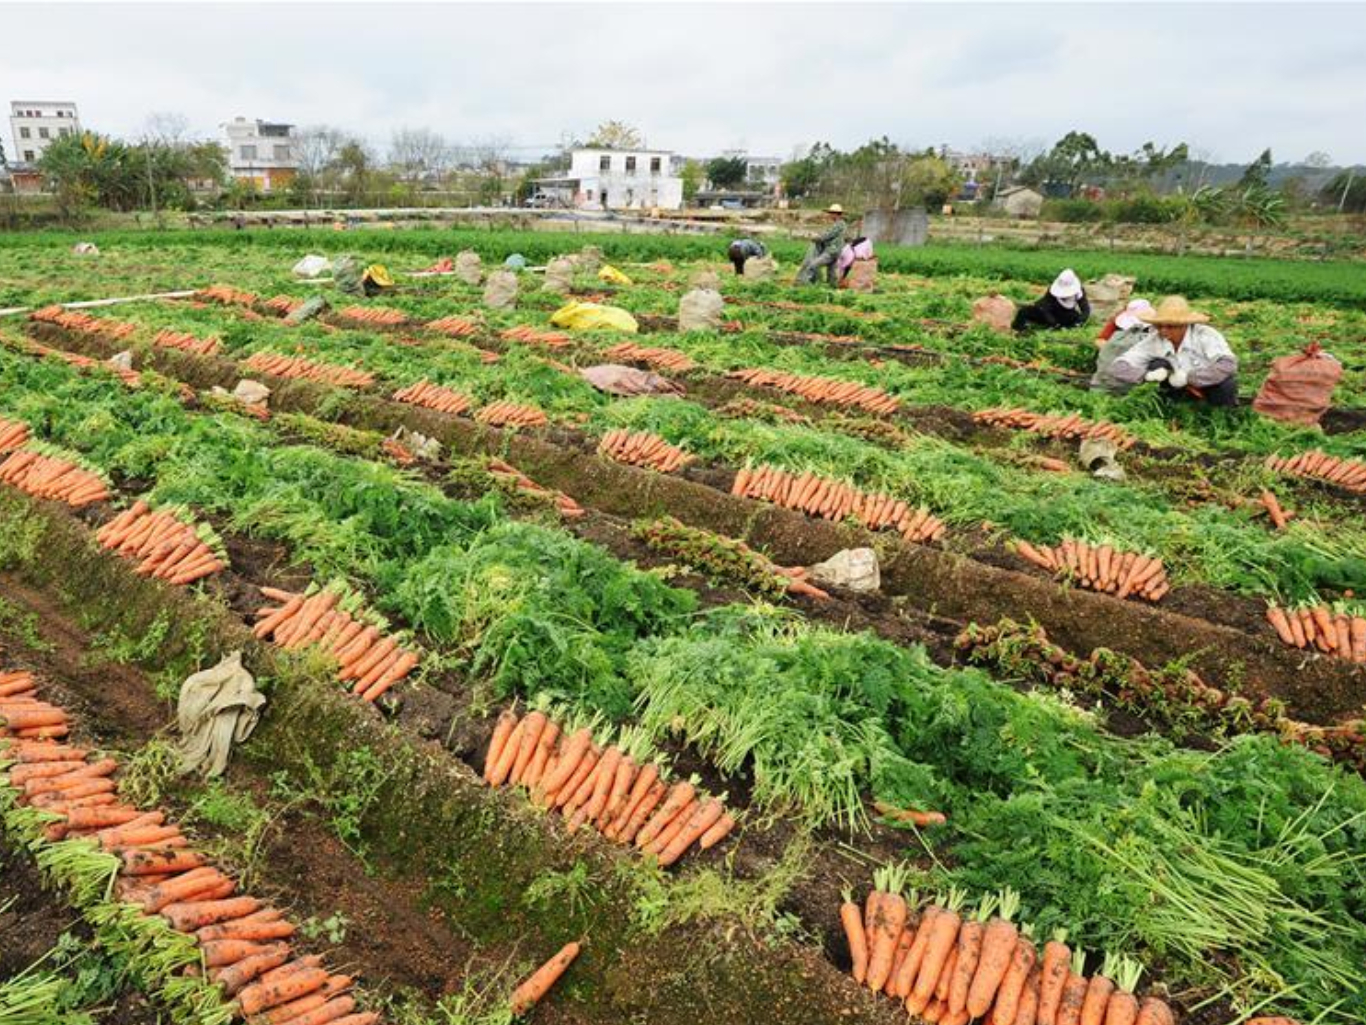 Farmers across China busy carrying out agricultural production as weather warms up